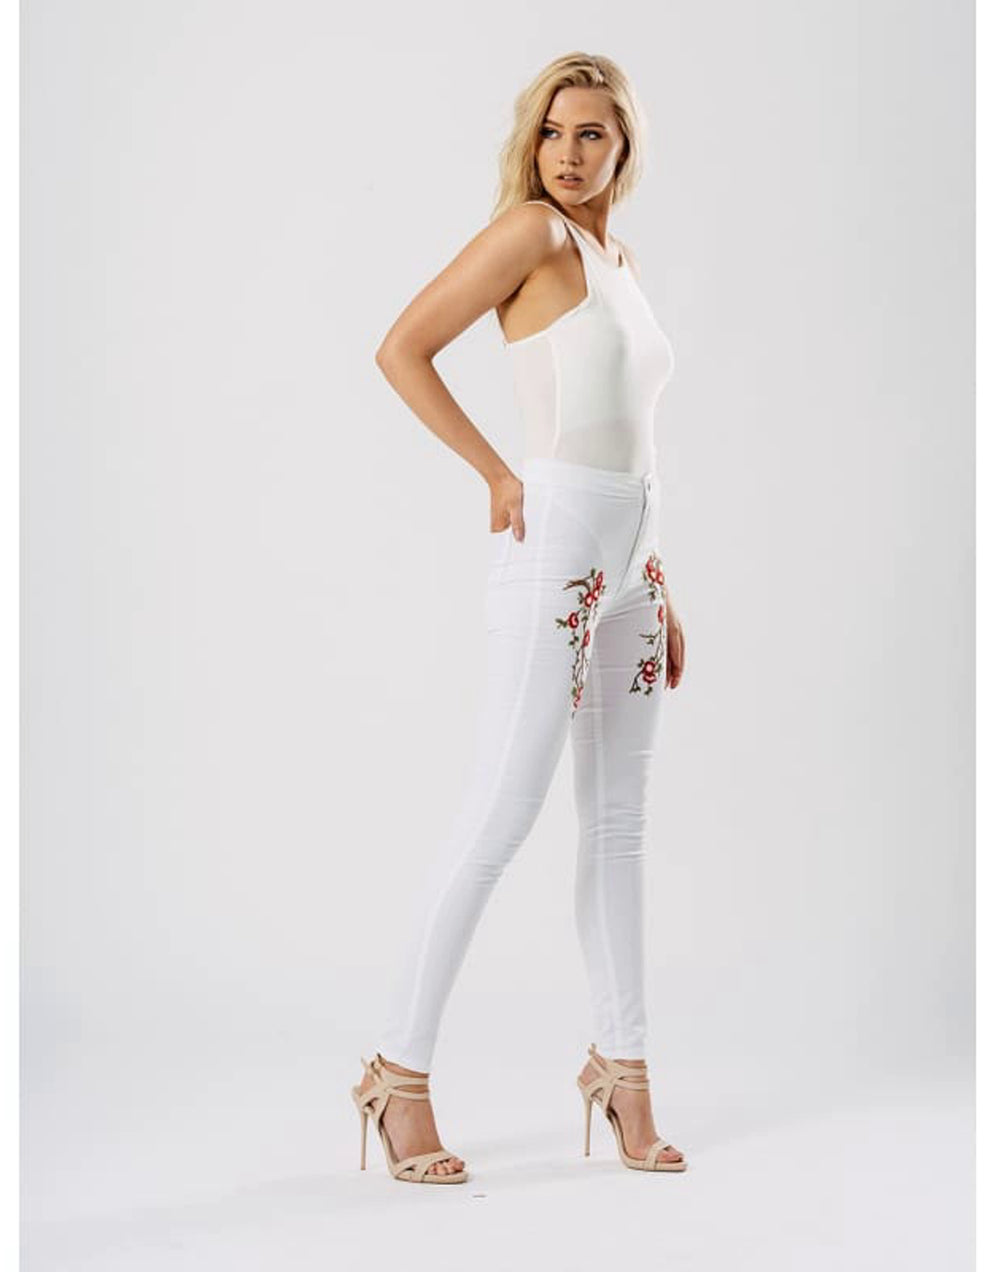 White Floral Embroidered Skinny Jeans - 12 / White - Jeans & Jeggings embellished jeans embroidered skinny jeans fitted trousers floral